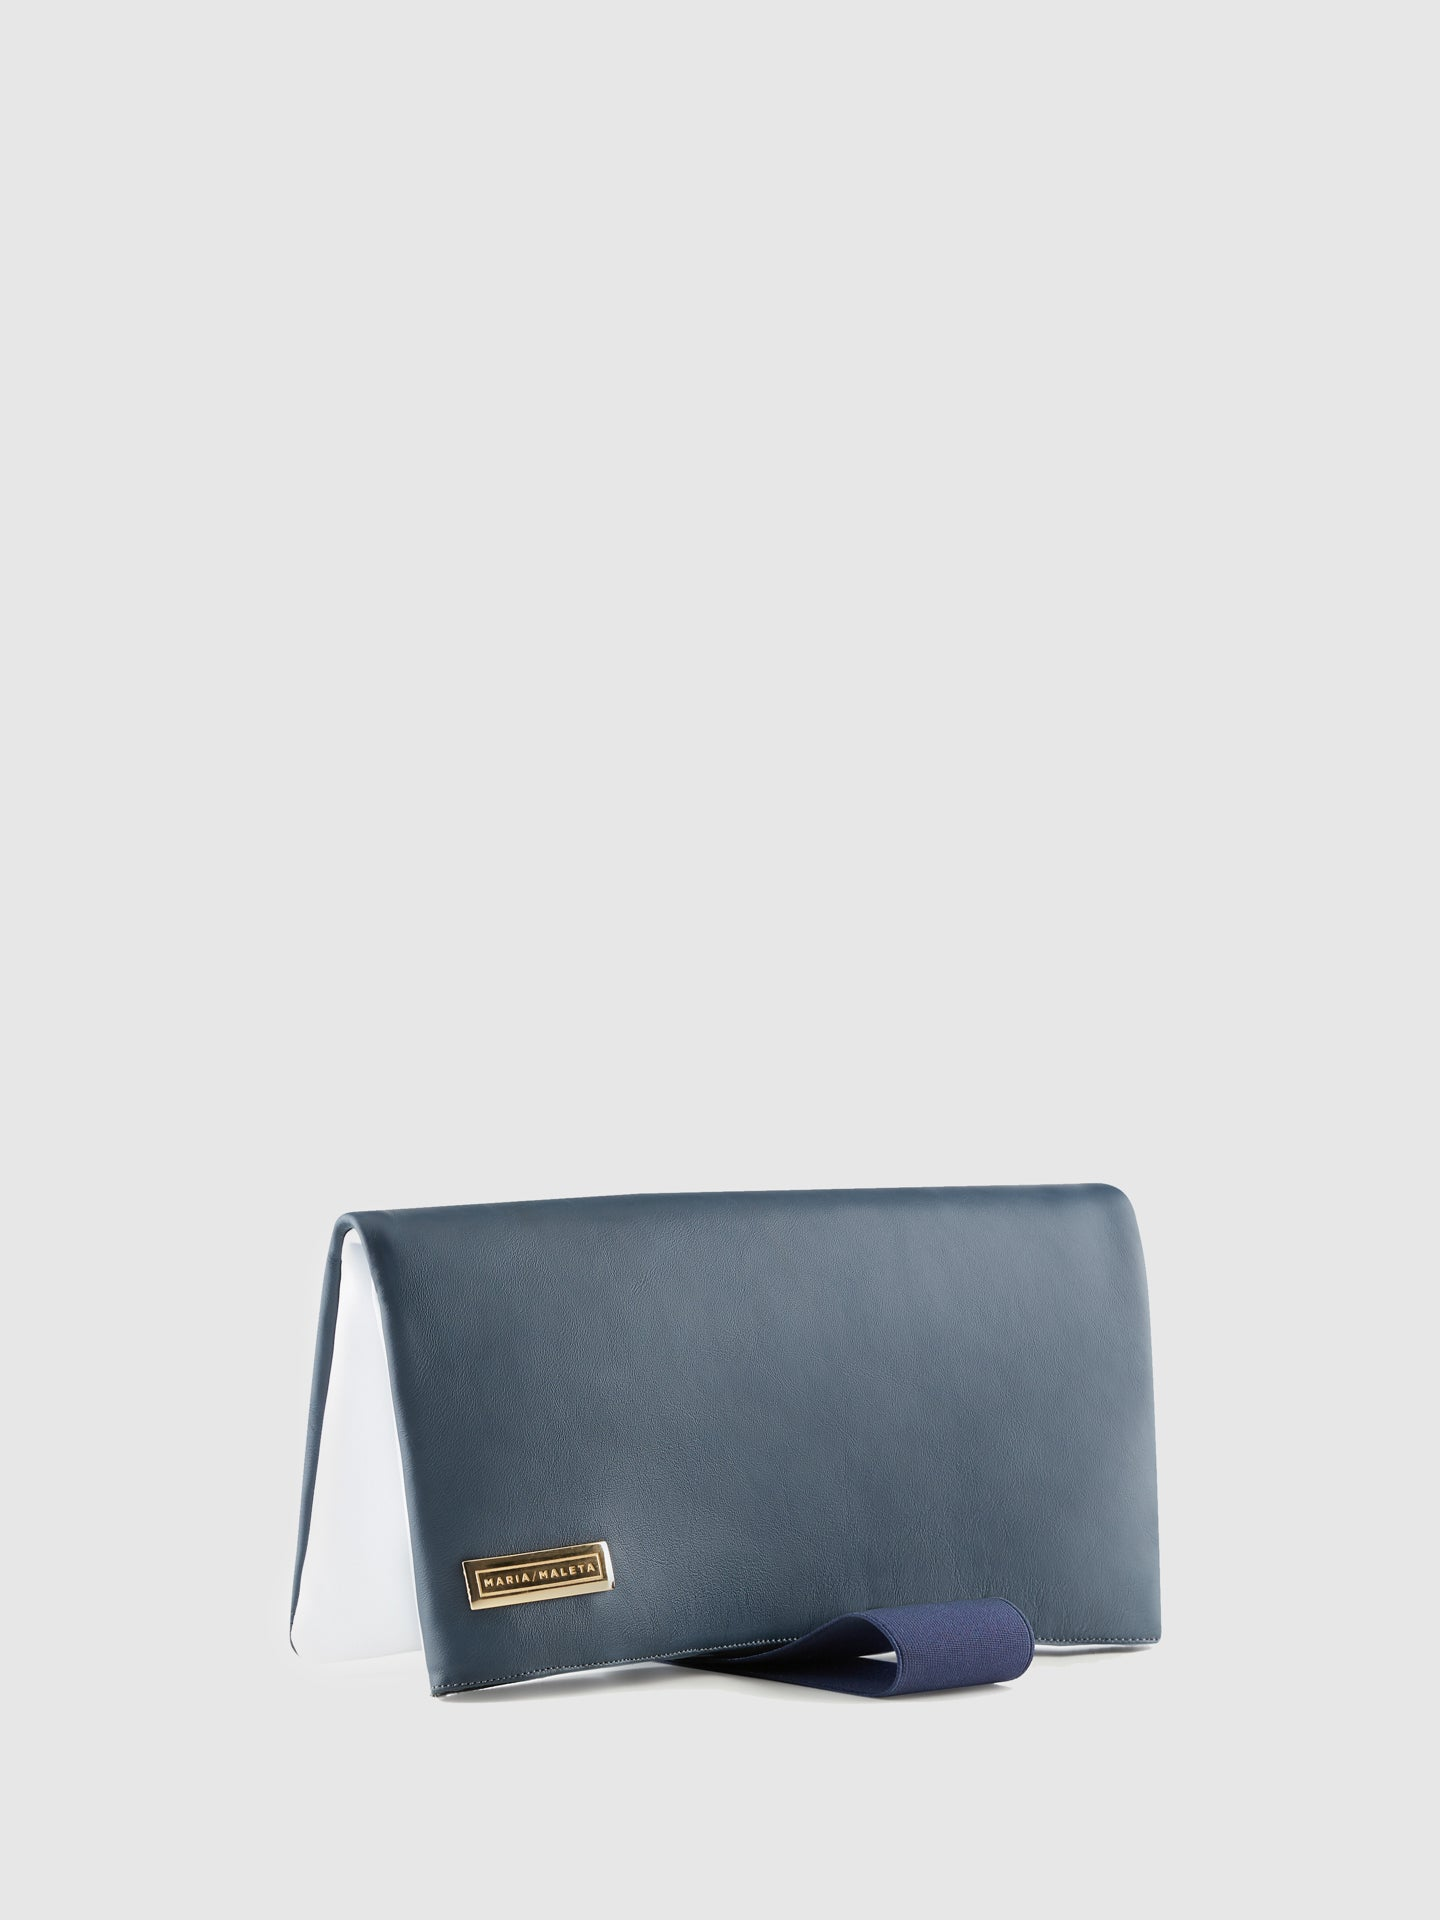 Maria Maleta Blue White Reversible Clutch Bag